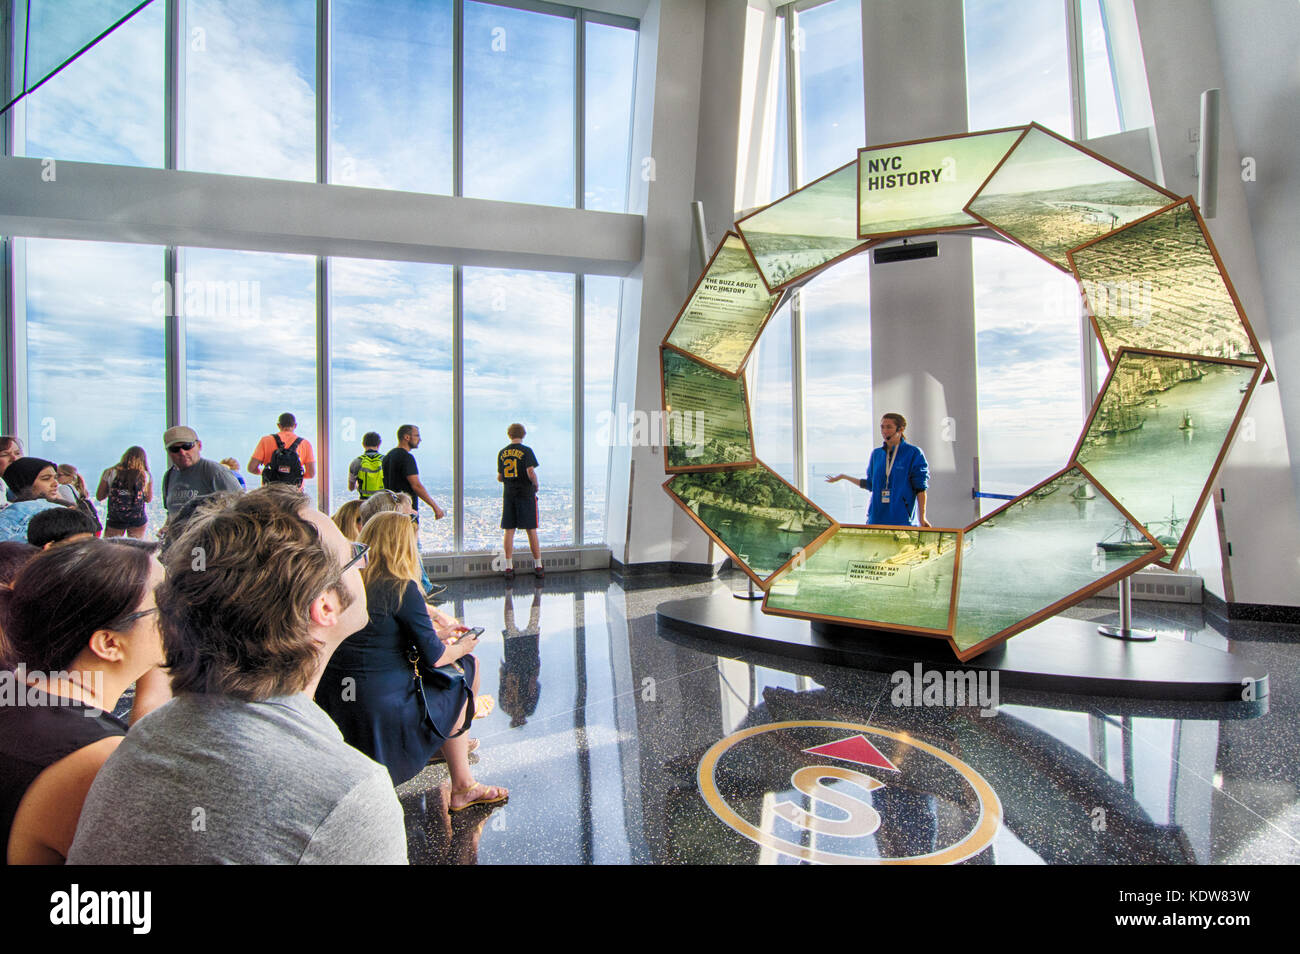 A tour guide educates visiting tourists on the history of New York city at One World Observatory, at the World Trade - Stock Image